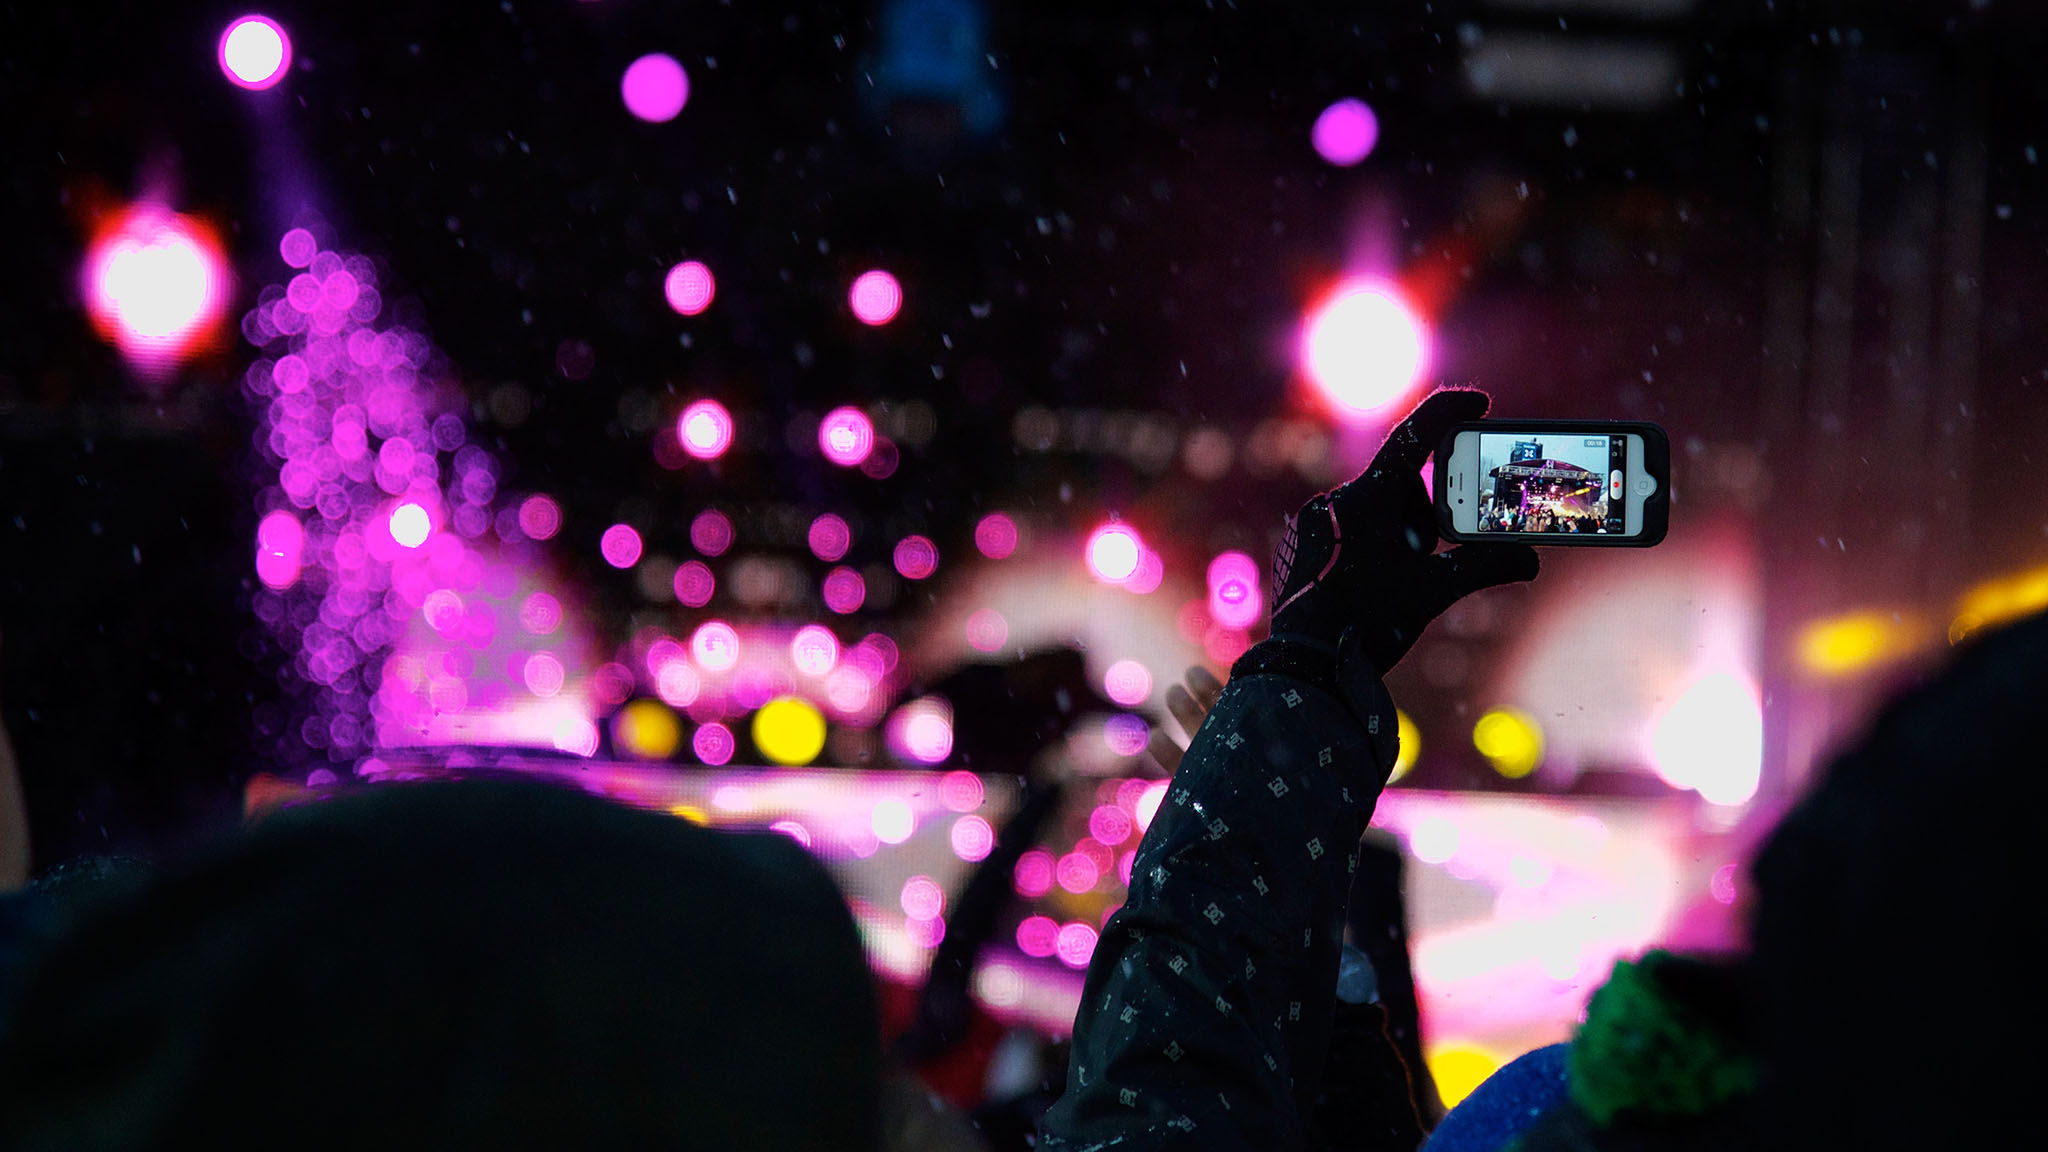 iPhones were out in full force, recording key moments from Calvin Harris' electrifying set at X Games Aspen 2013.